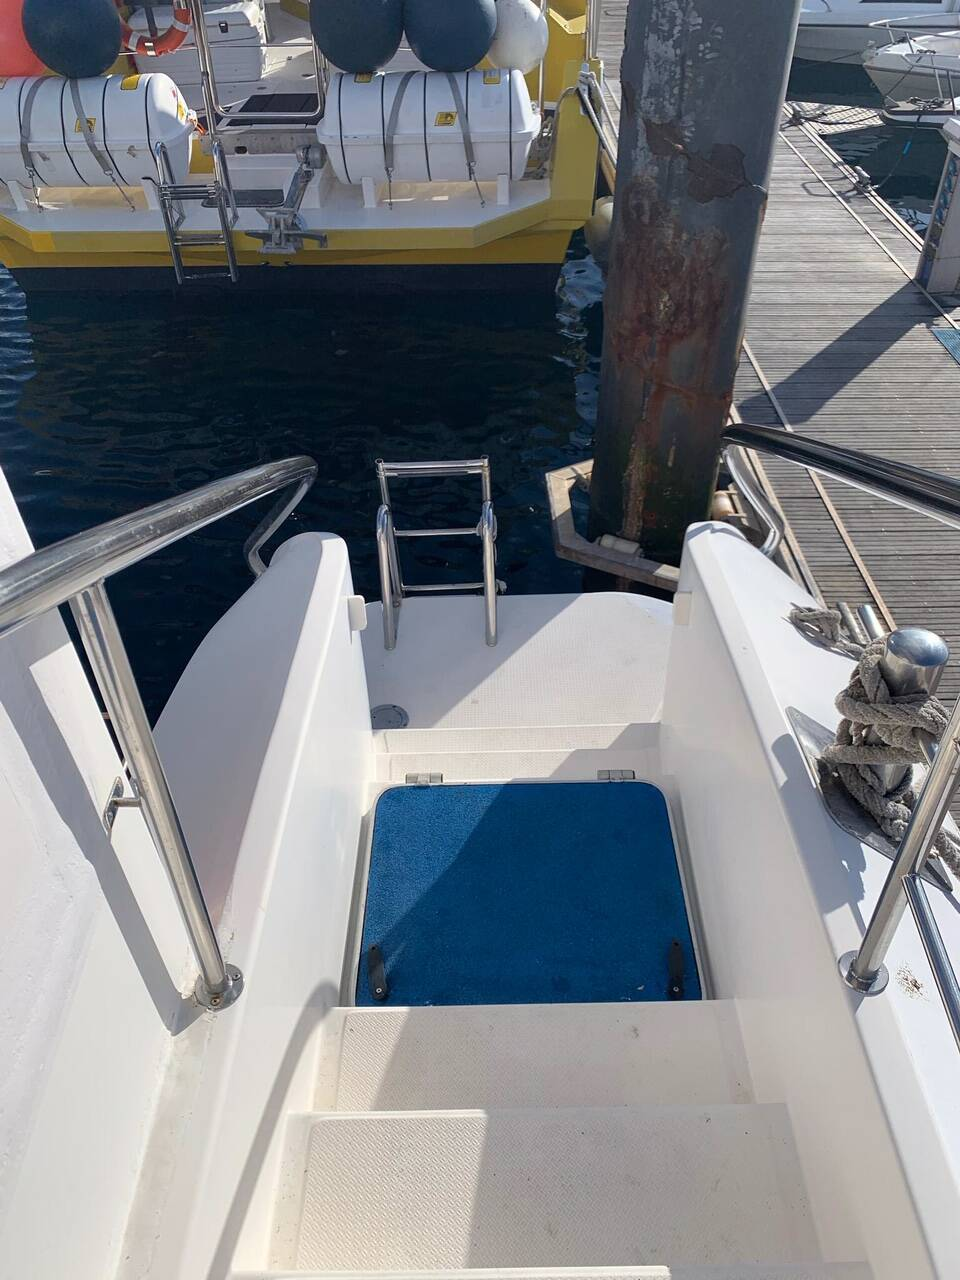 Steps up Commercial Catamaran Glass Bottom Boat for sale